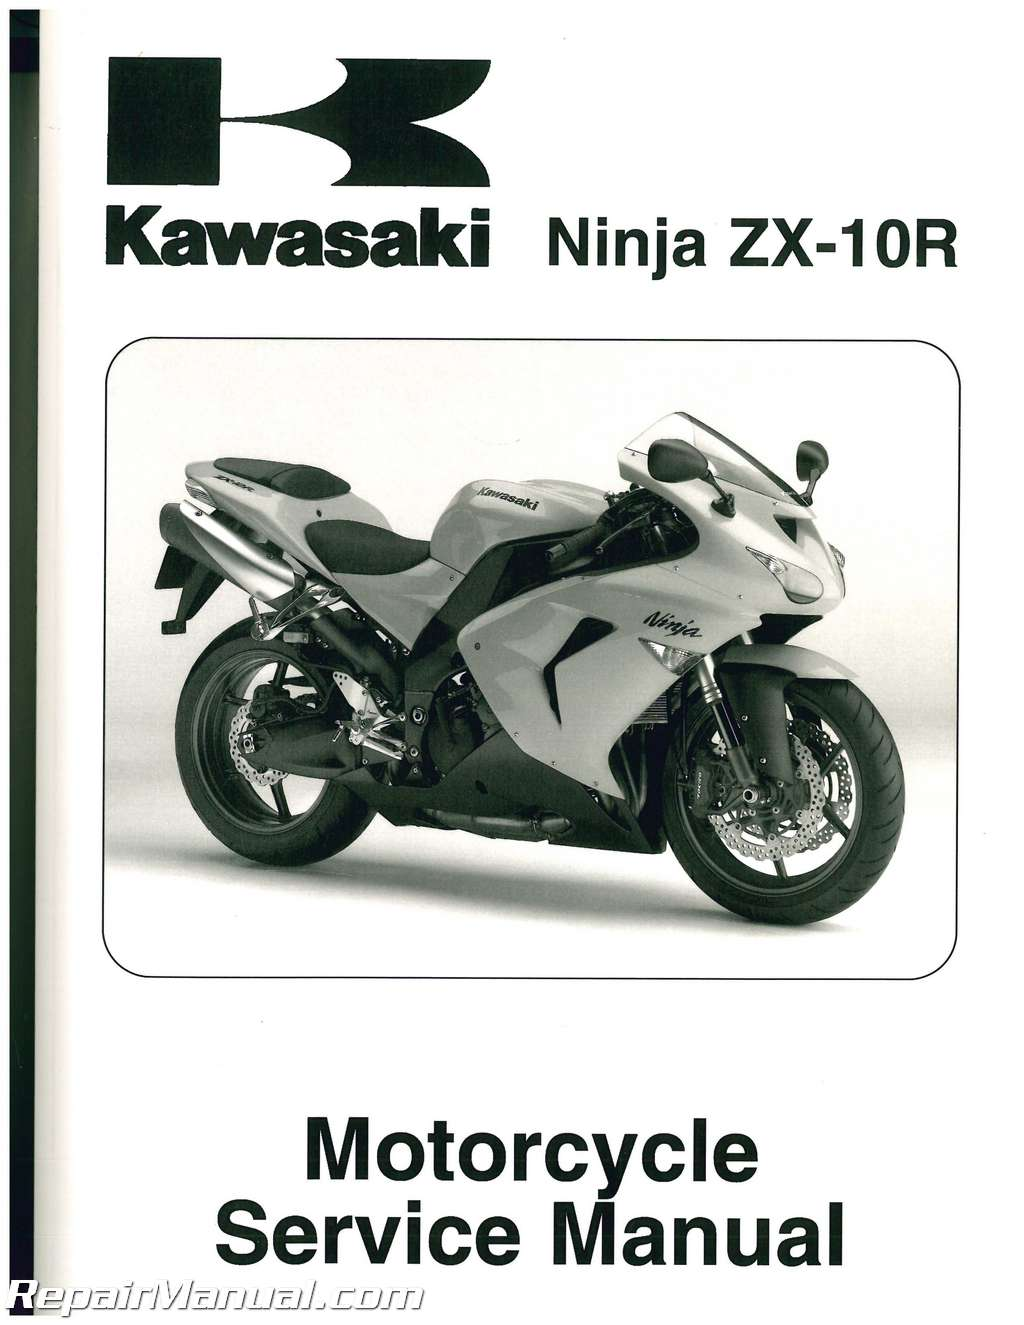 2006 2007 kawasaki ninja zx 10r service manual rh repairmanual com The Illustrated Ninja Handbook Ninja Master